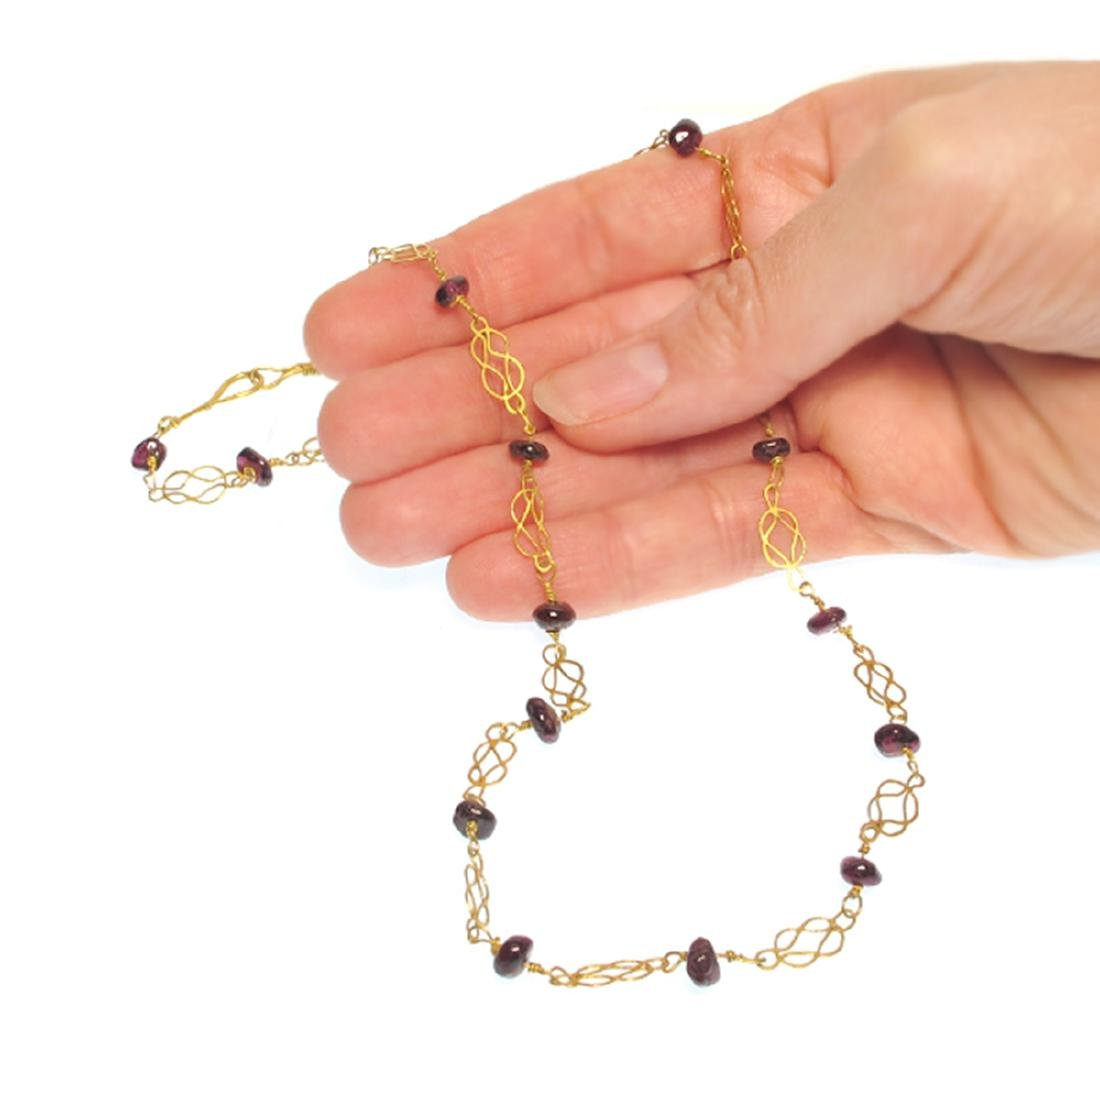 Roman Gold and Garnets Necklace, 3rd-4th Century A.D. - 6